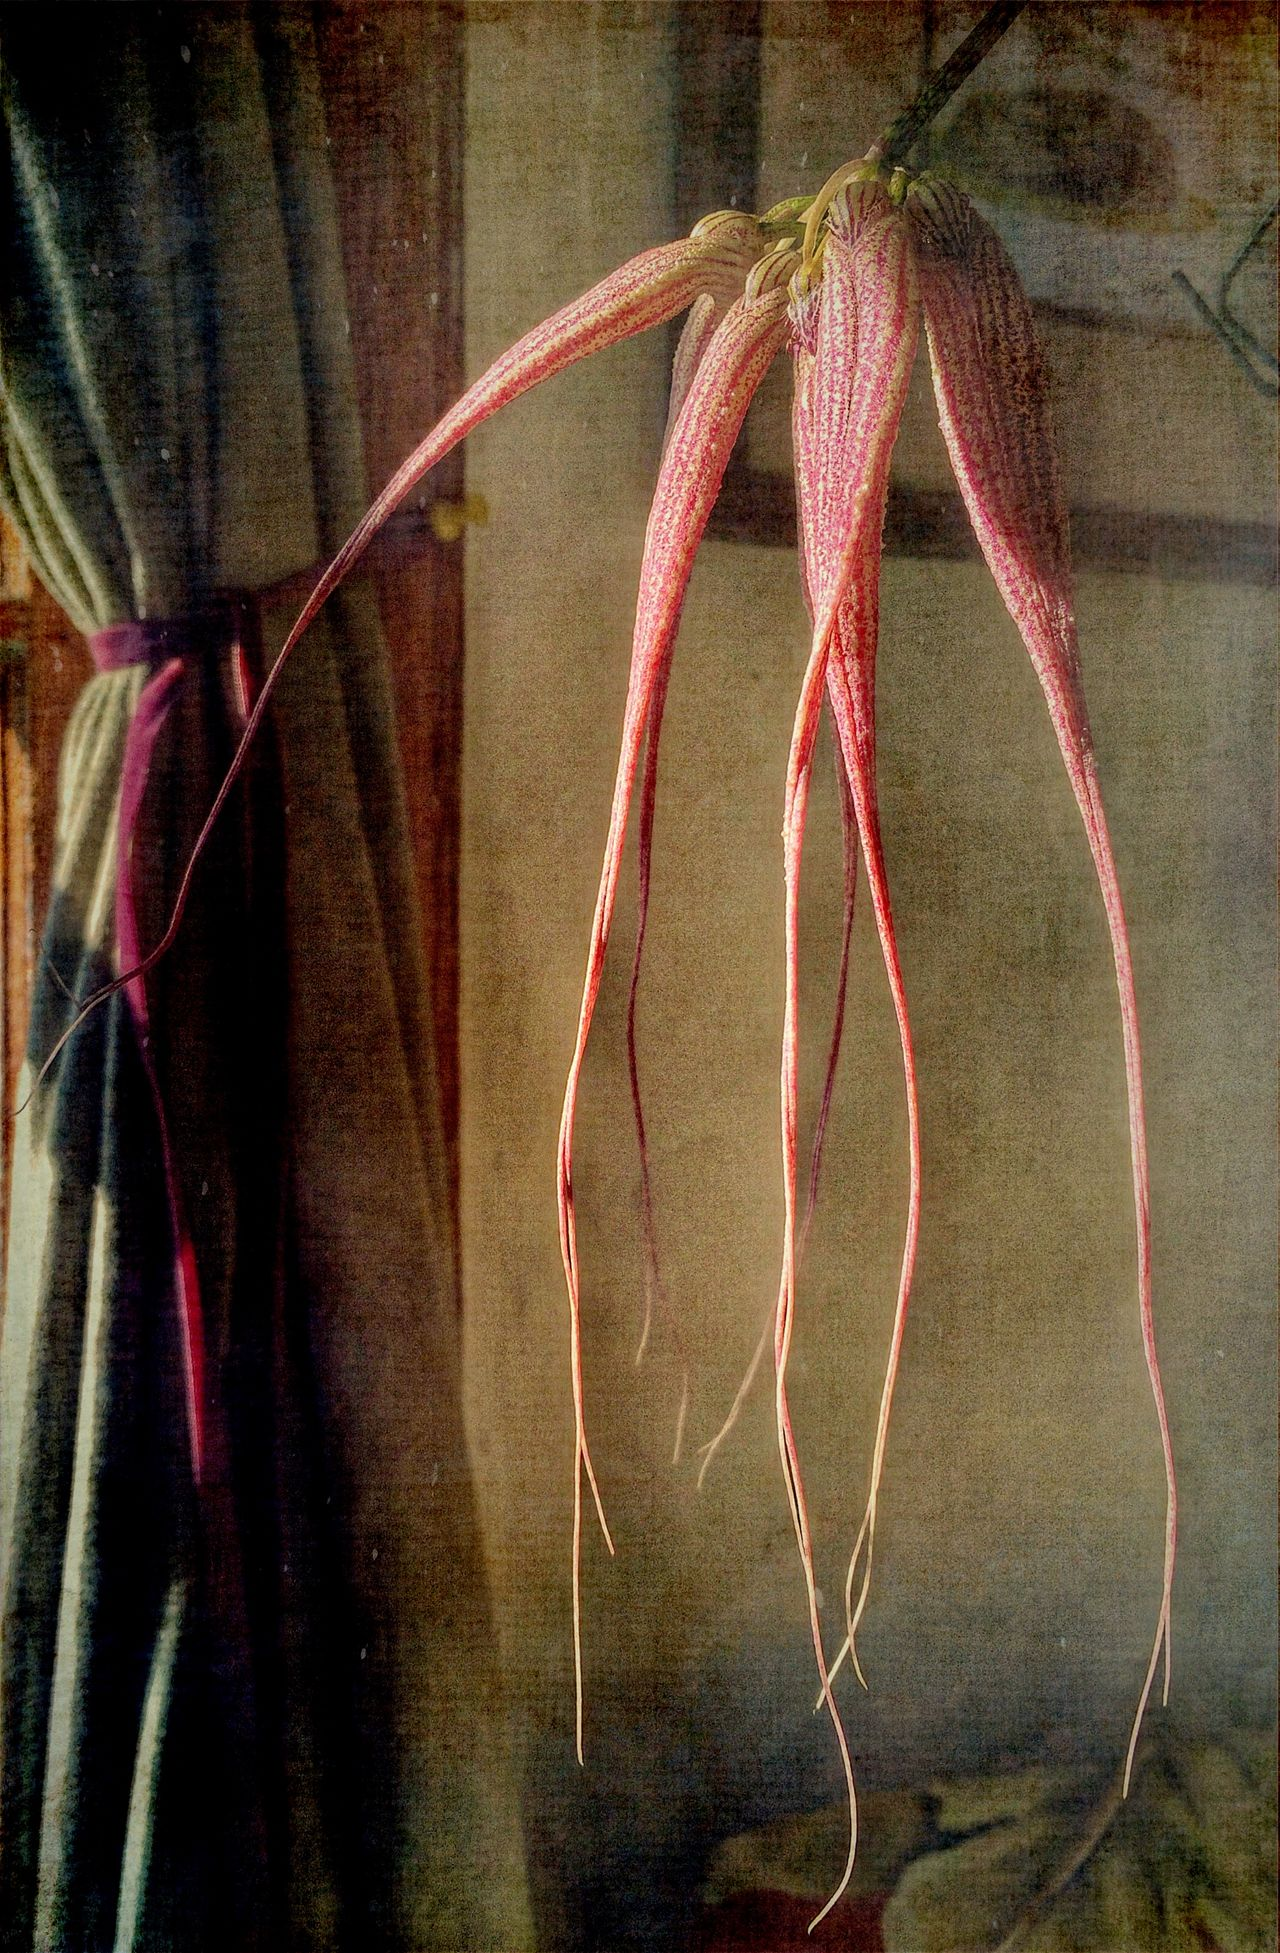 Dendritic Drama Abstract Botany Bulbophyllum Elizabeth Ann 'Buckleberry' Orchid. Commonly Known As A Bulbo Fragility Glowing Growing Modern Meets Old Fashioned Orchid Pink Tendrils